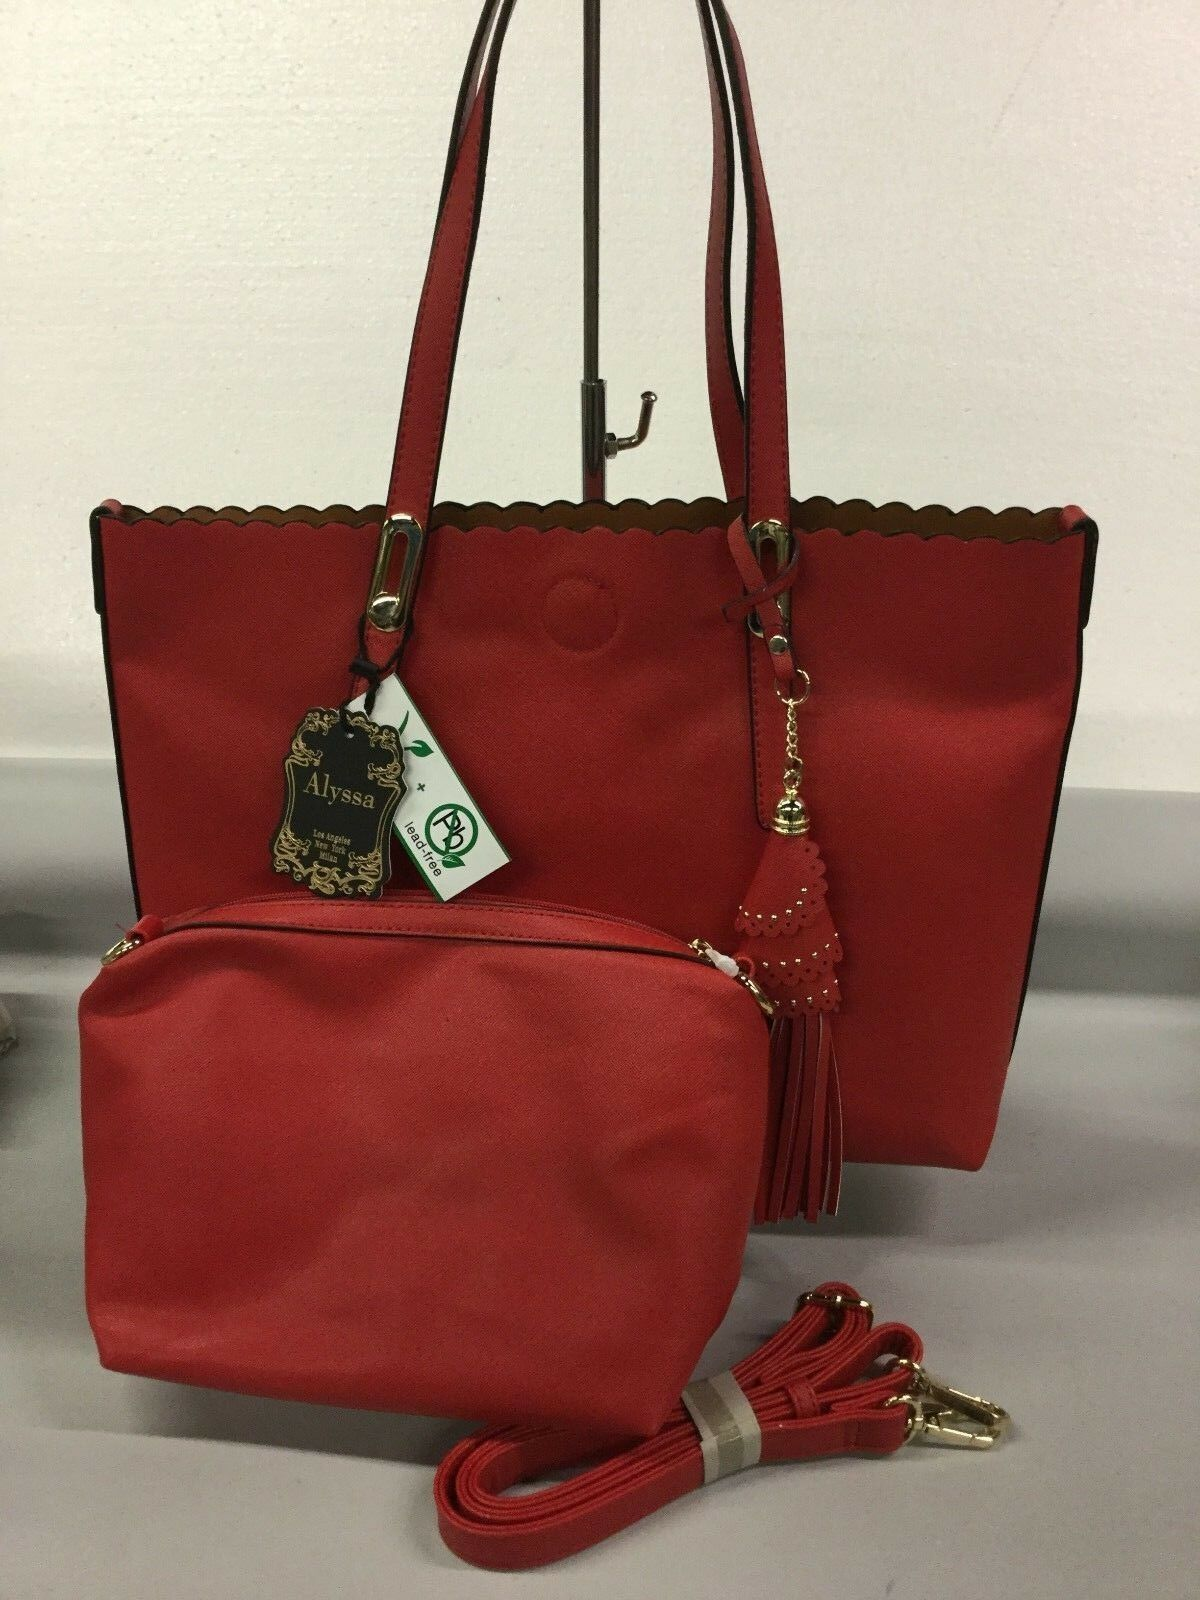 ALYSSA VEGAN LEAD FREE NWT HANDBAG AND TOTE PURSE #39